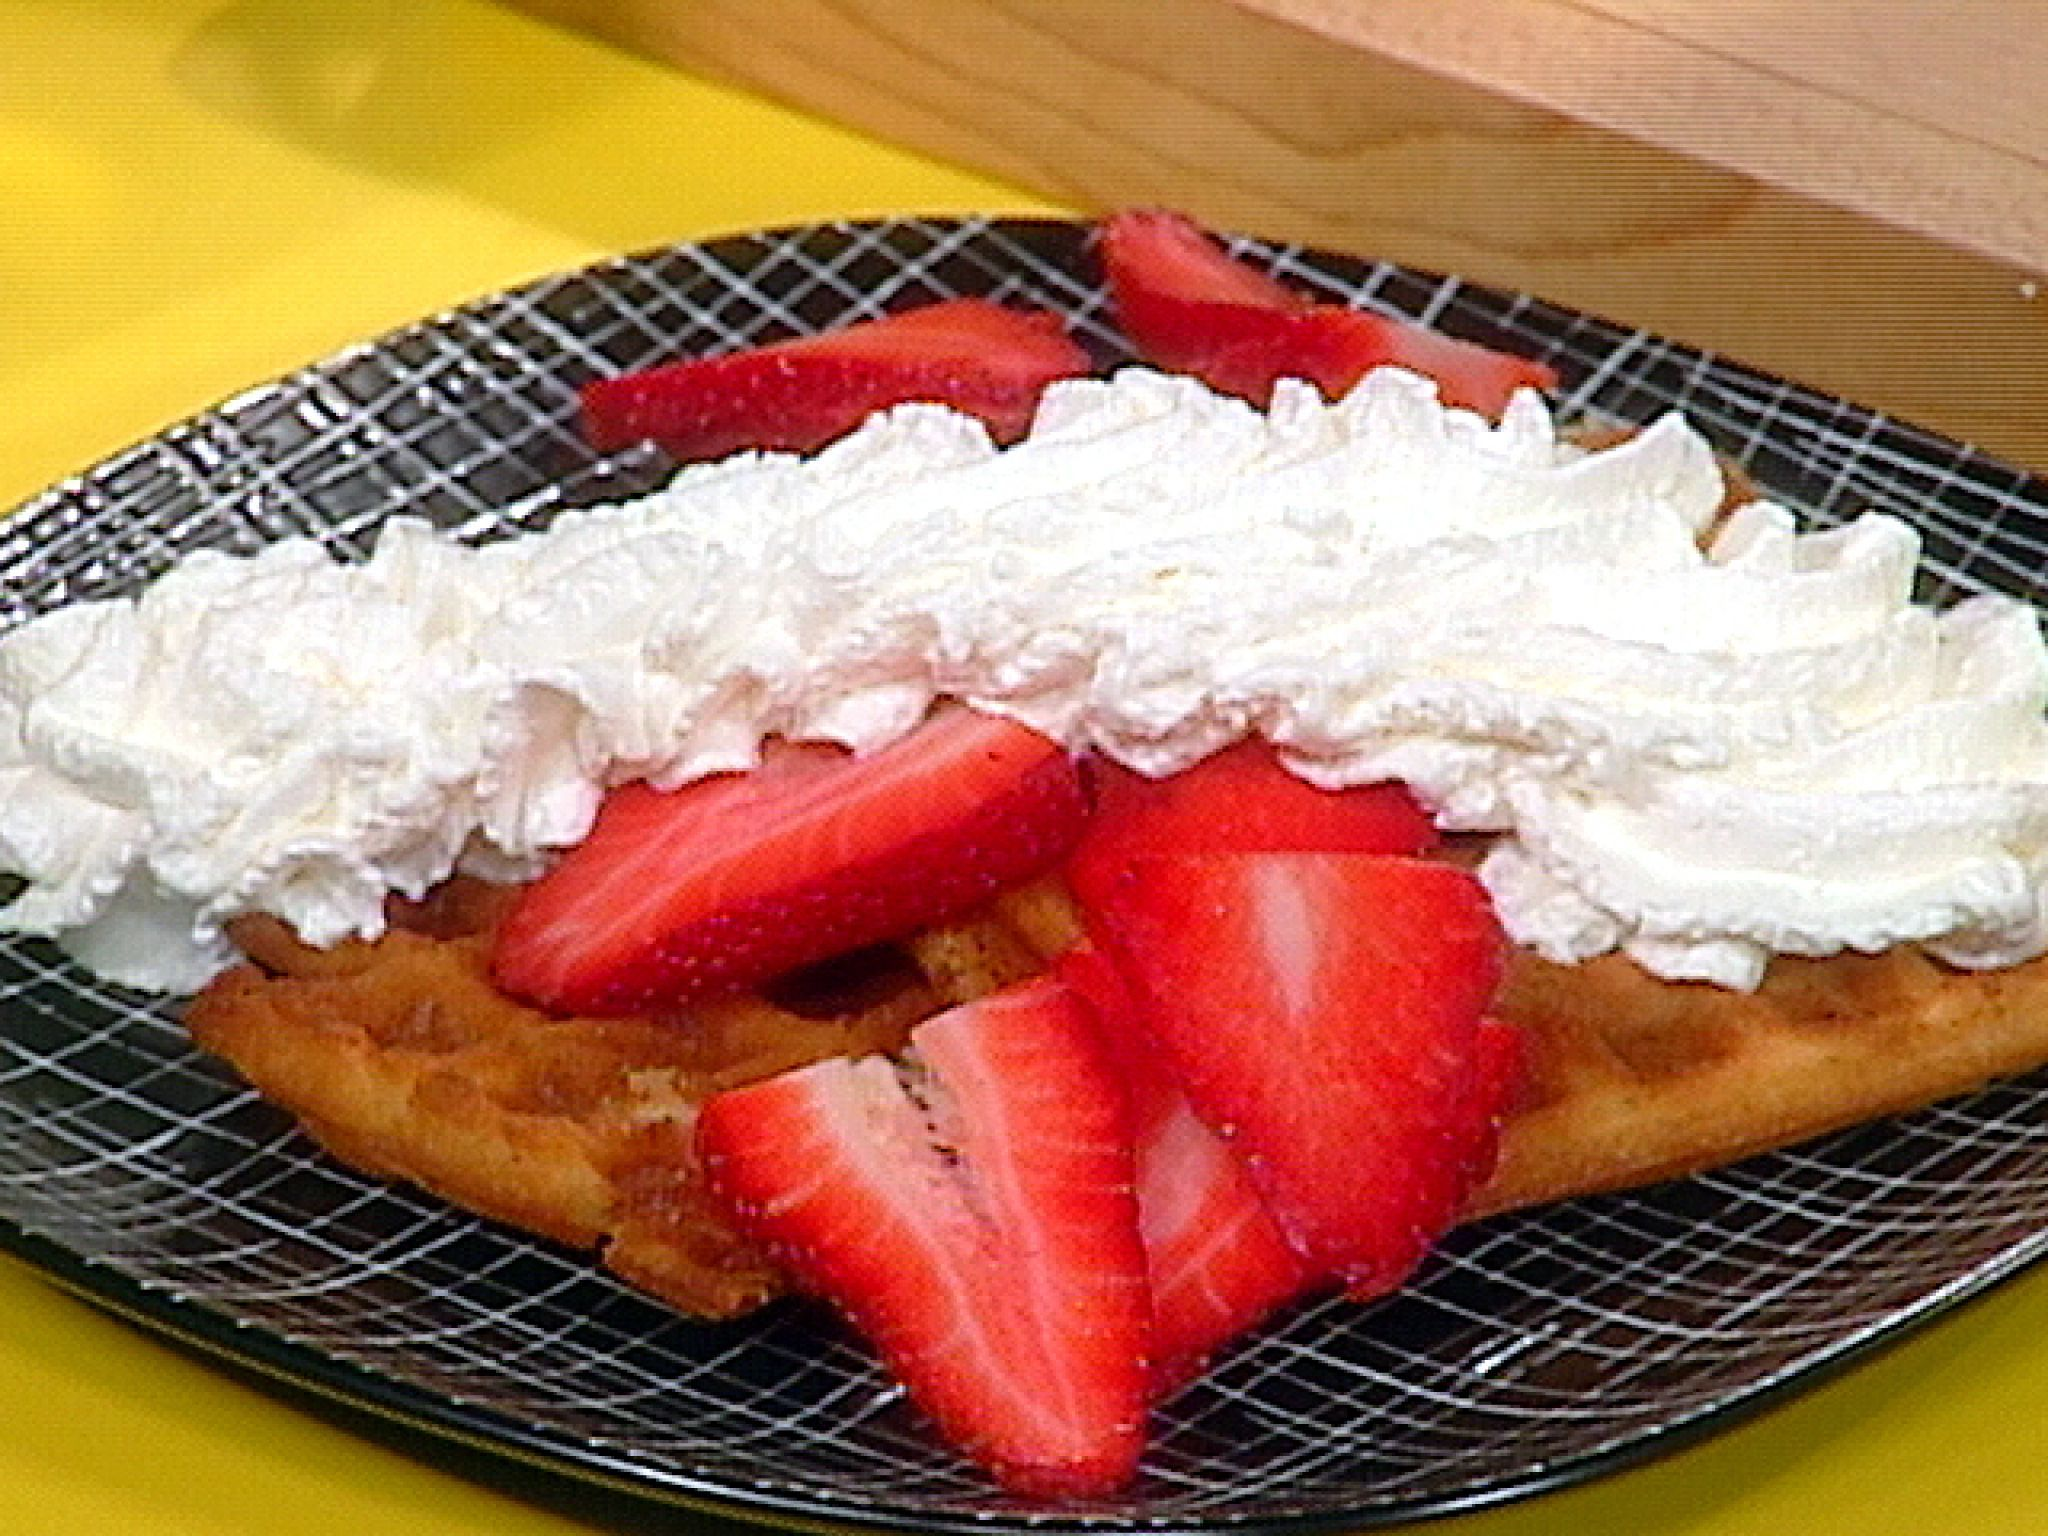 Sugar Waffles with Berries and Whipped Cream Recipe